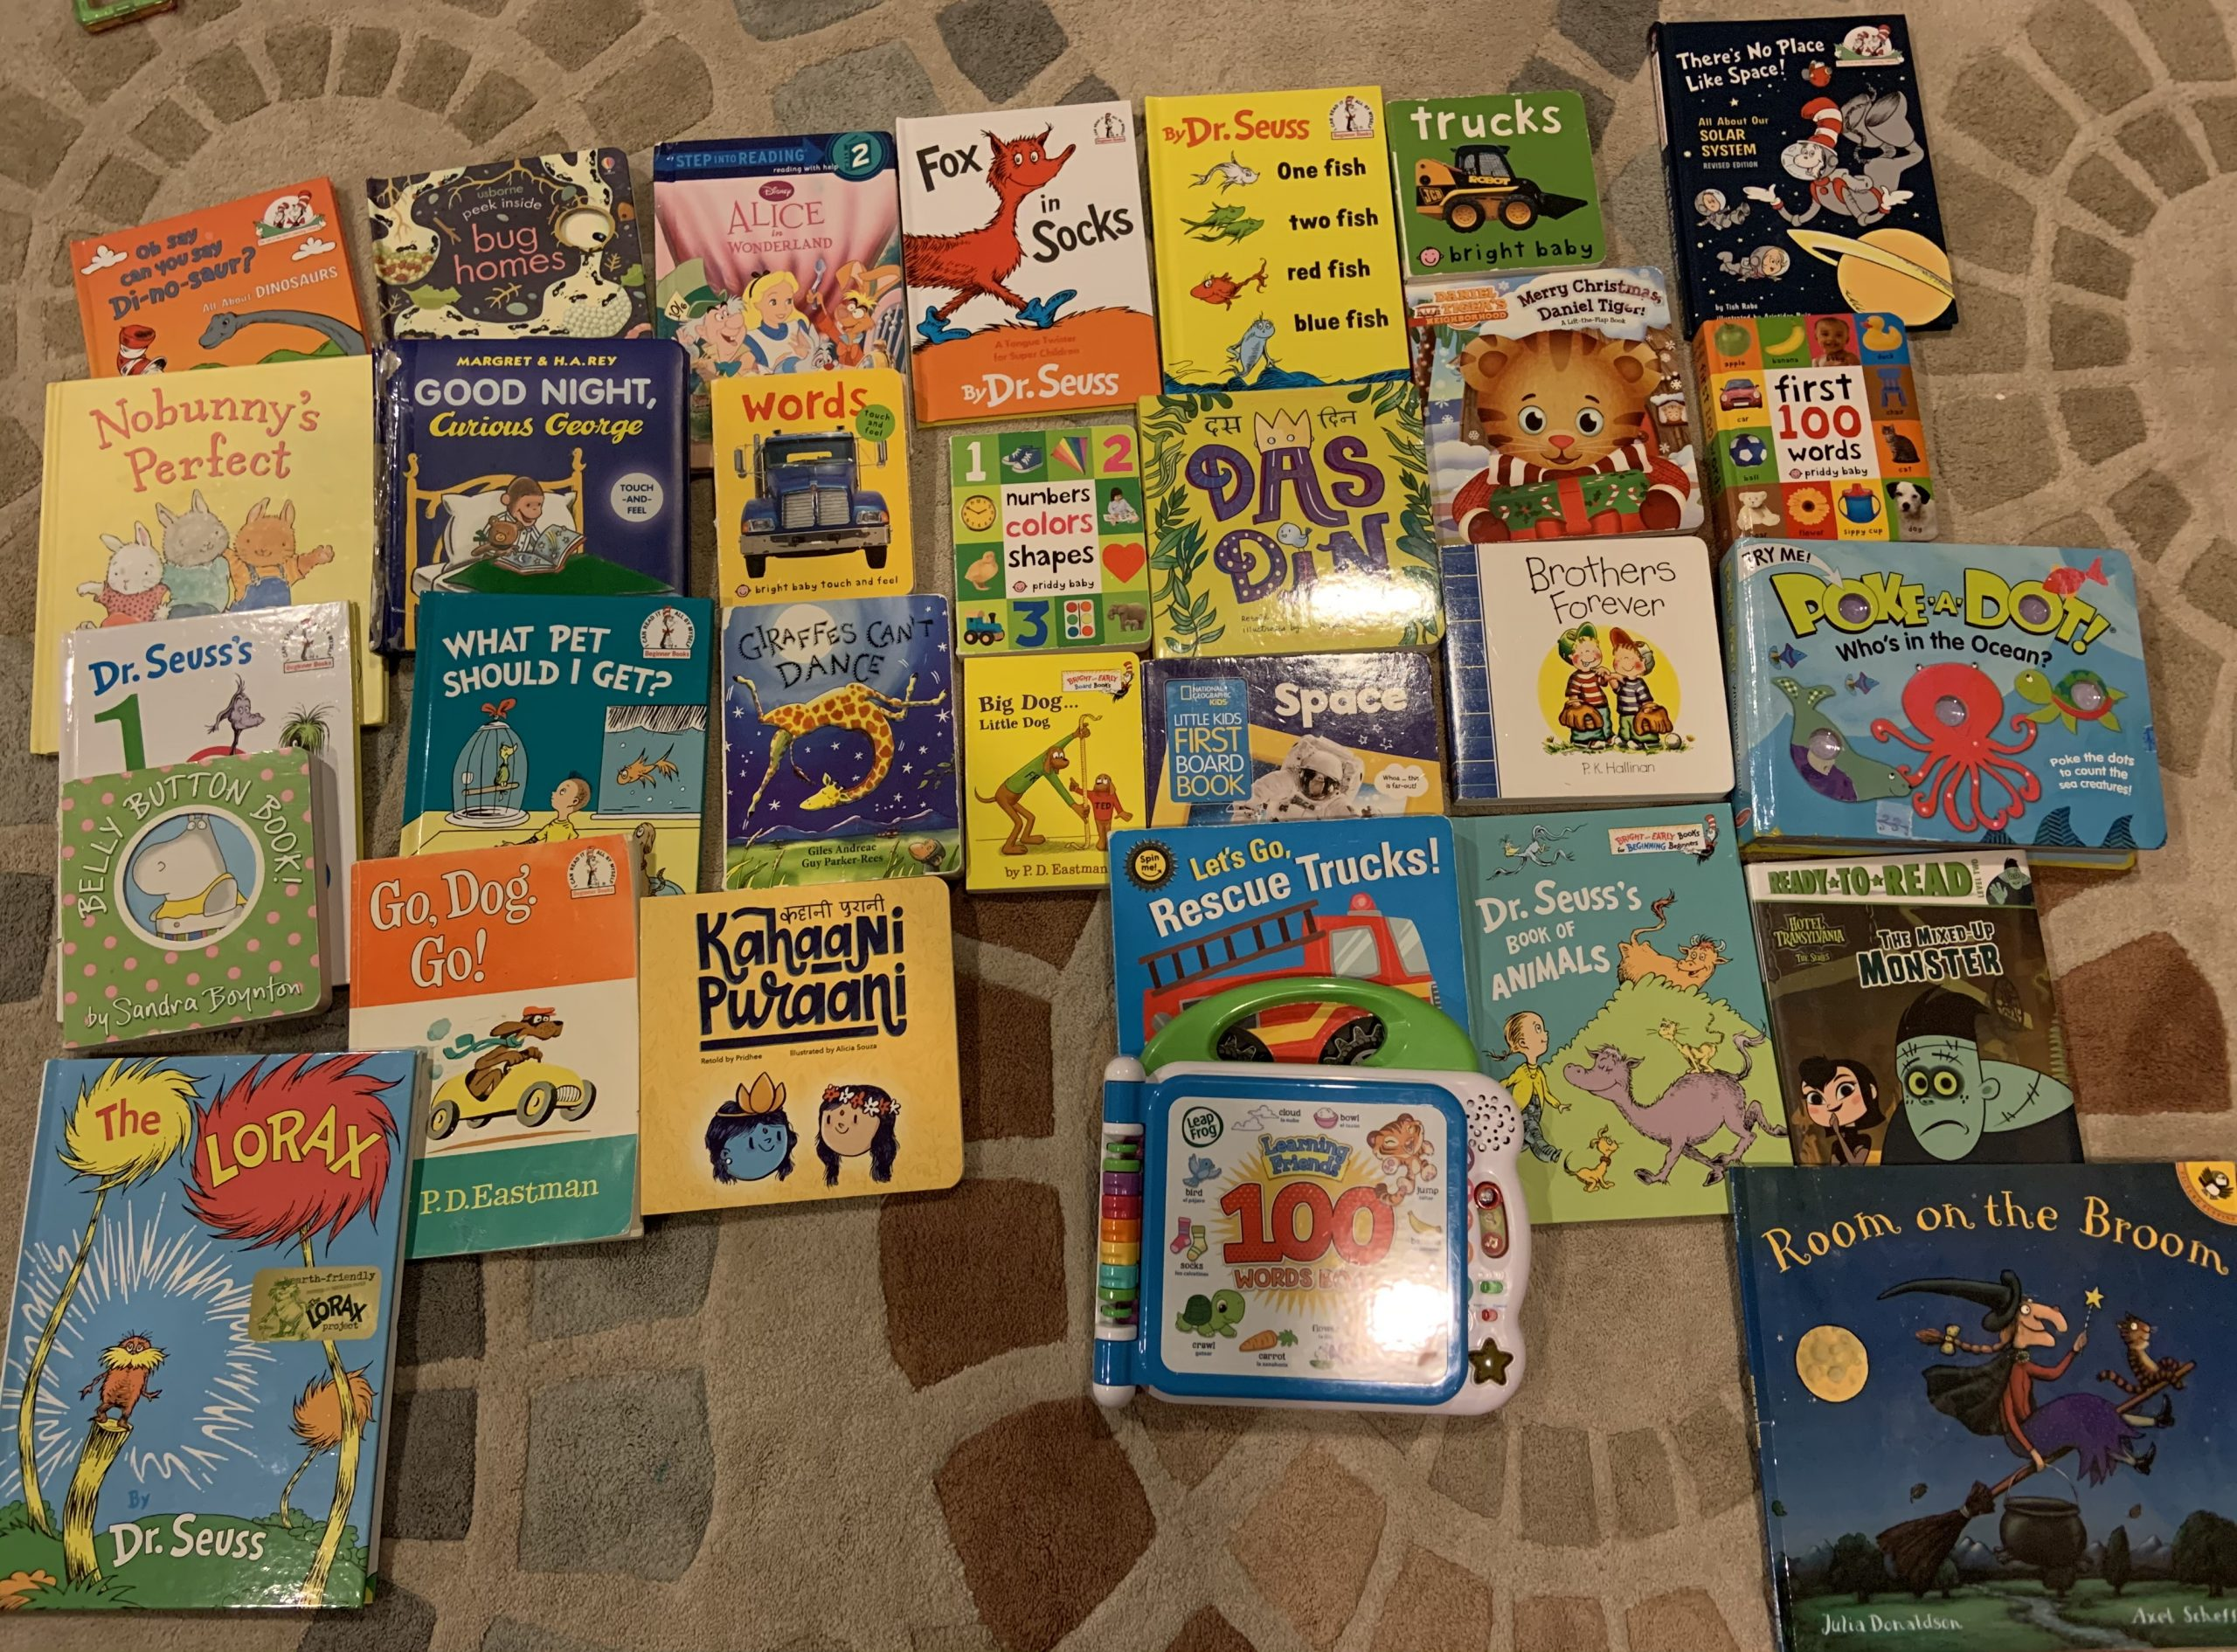 Riteish's List of Most Loved Books for 0-3 year olds #kbcBookBingo